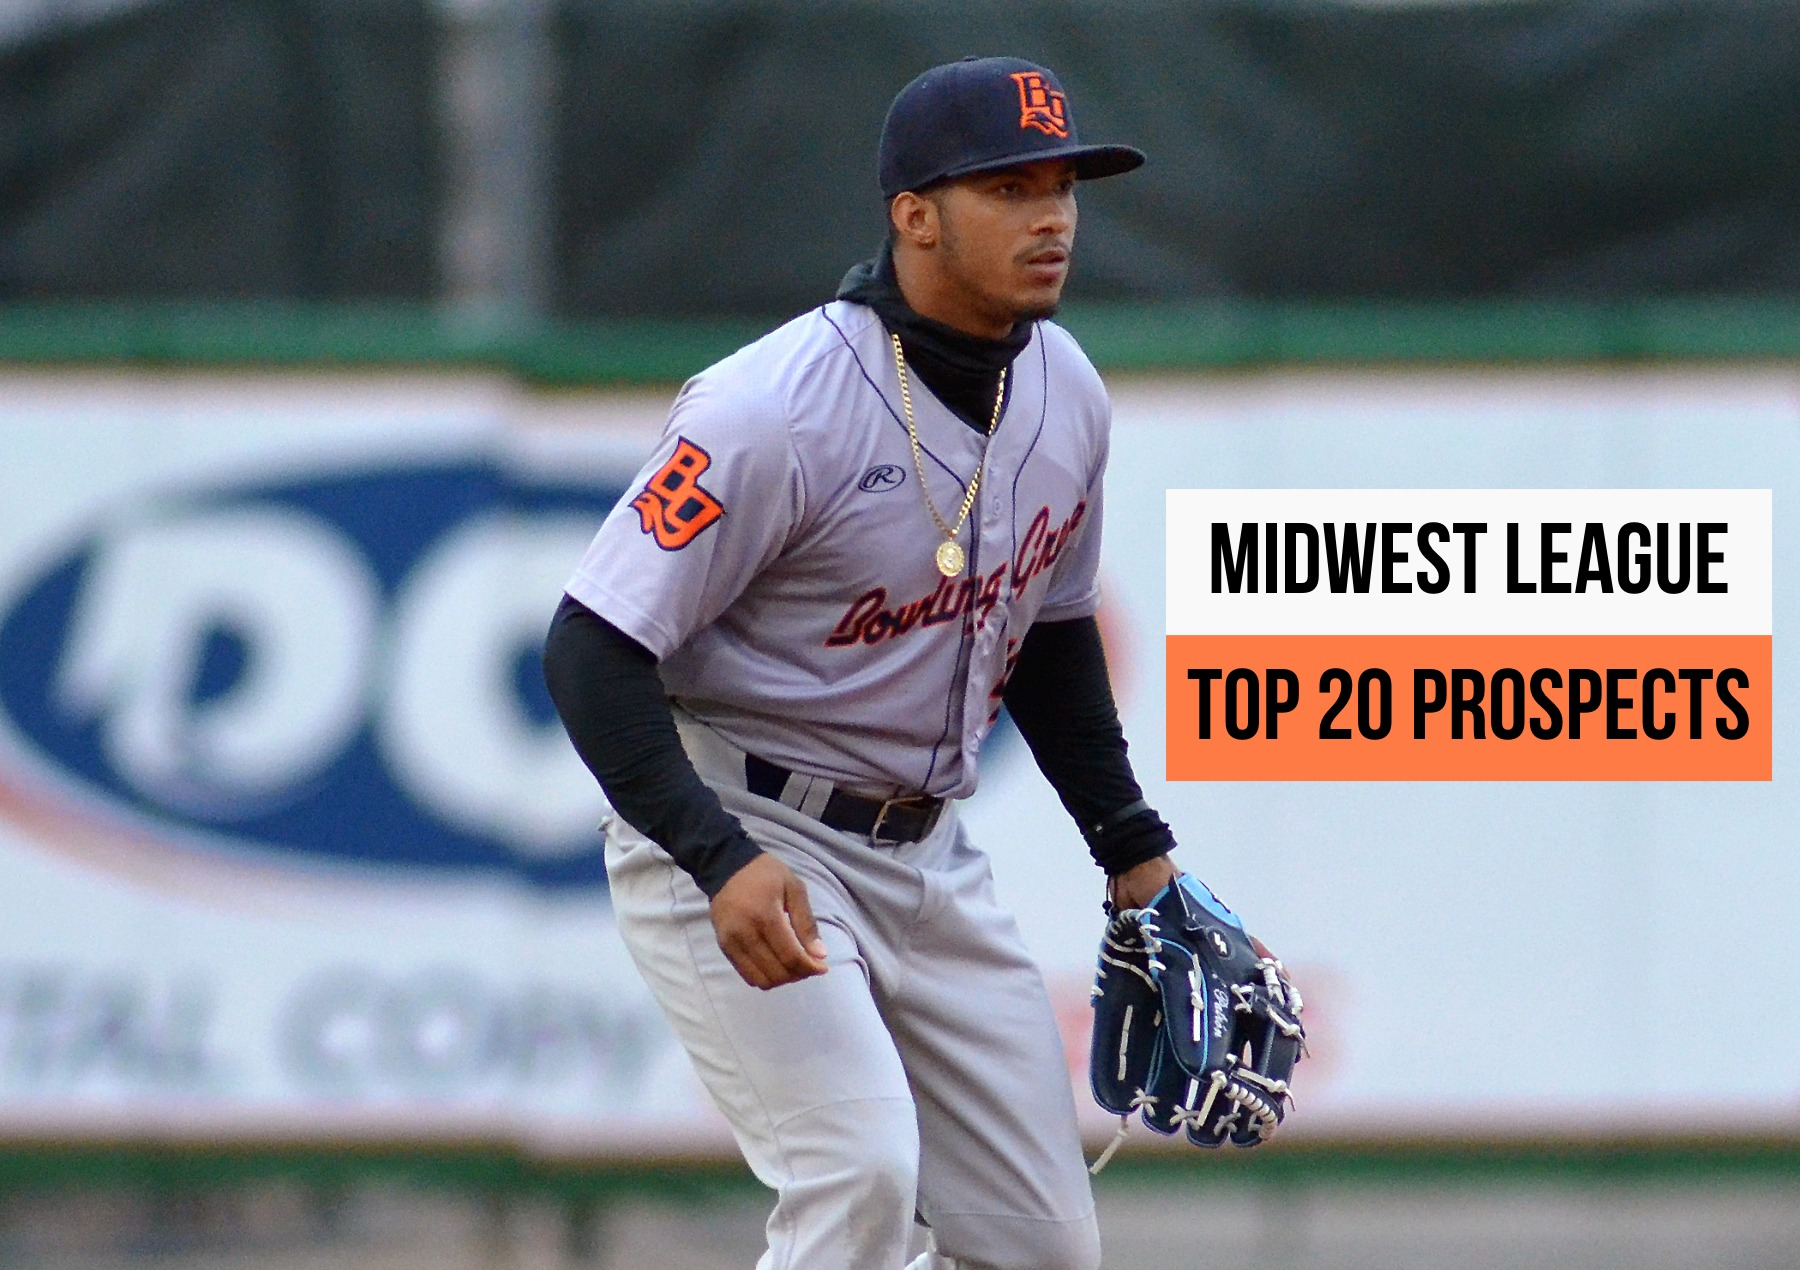 Midwest League Top 20 Prospects For 2019